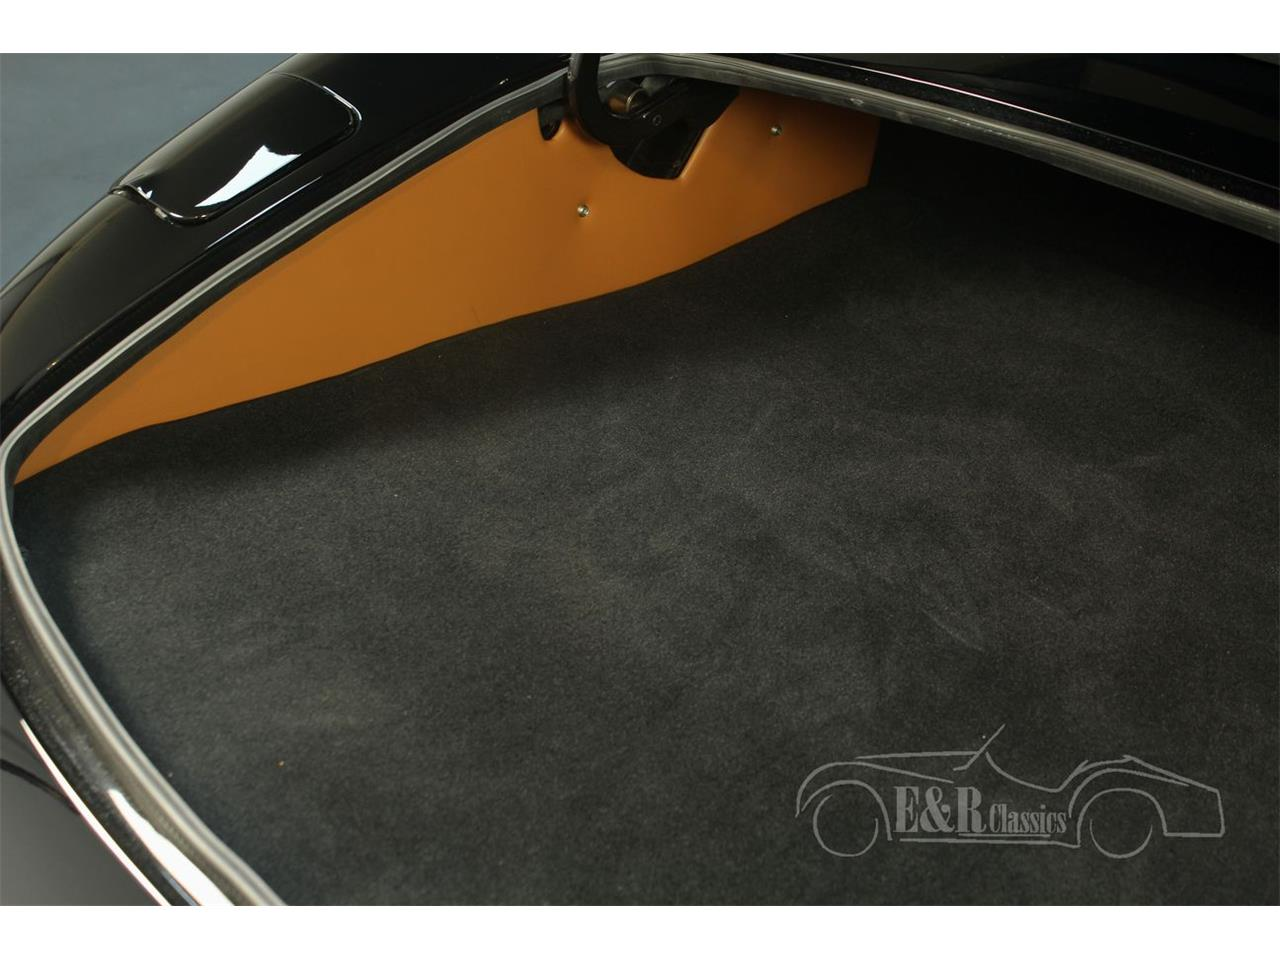 Large Picture of Classic 1969 Jaguar E-Type located in noord brabant - $145,500.00 Offered by E & R Classics - QOU8